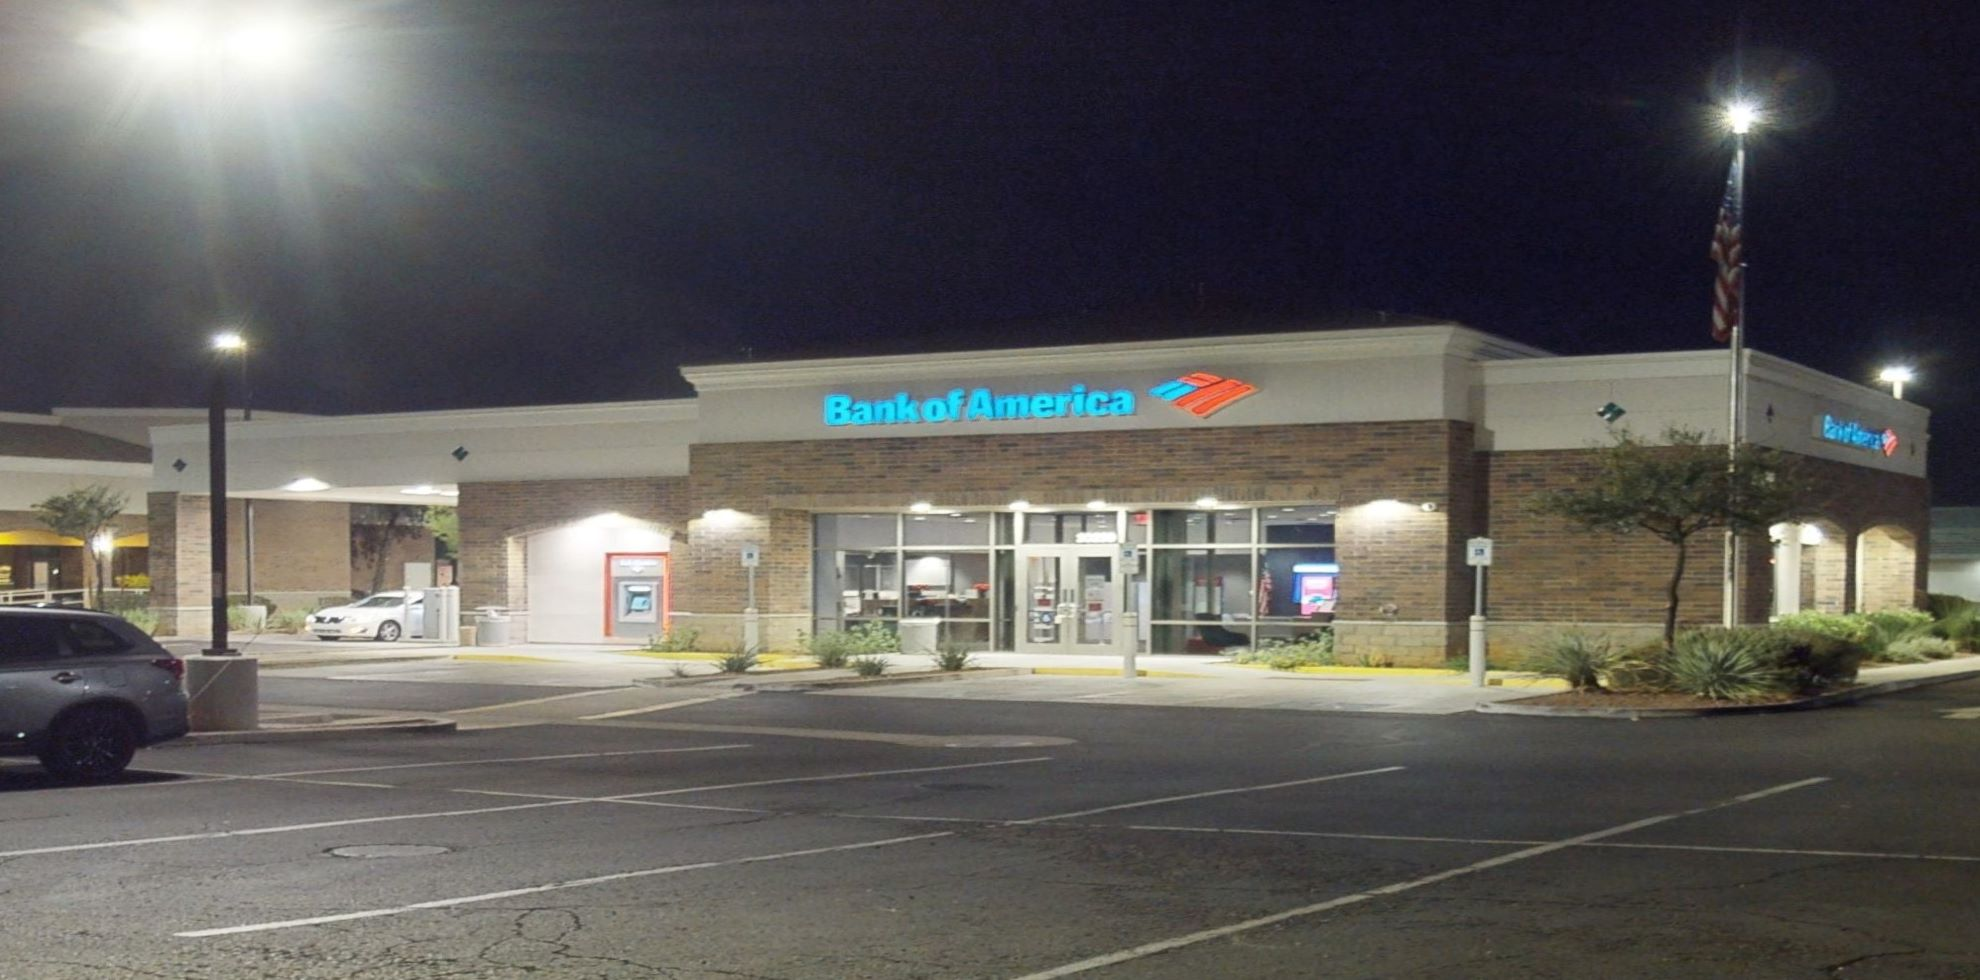 Bank of America financial center with drive-thru ATM and teller | 20239 N 67th Ave, Glendale, AZ 85308